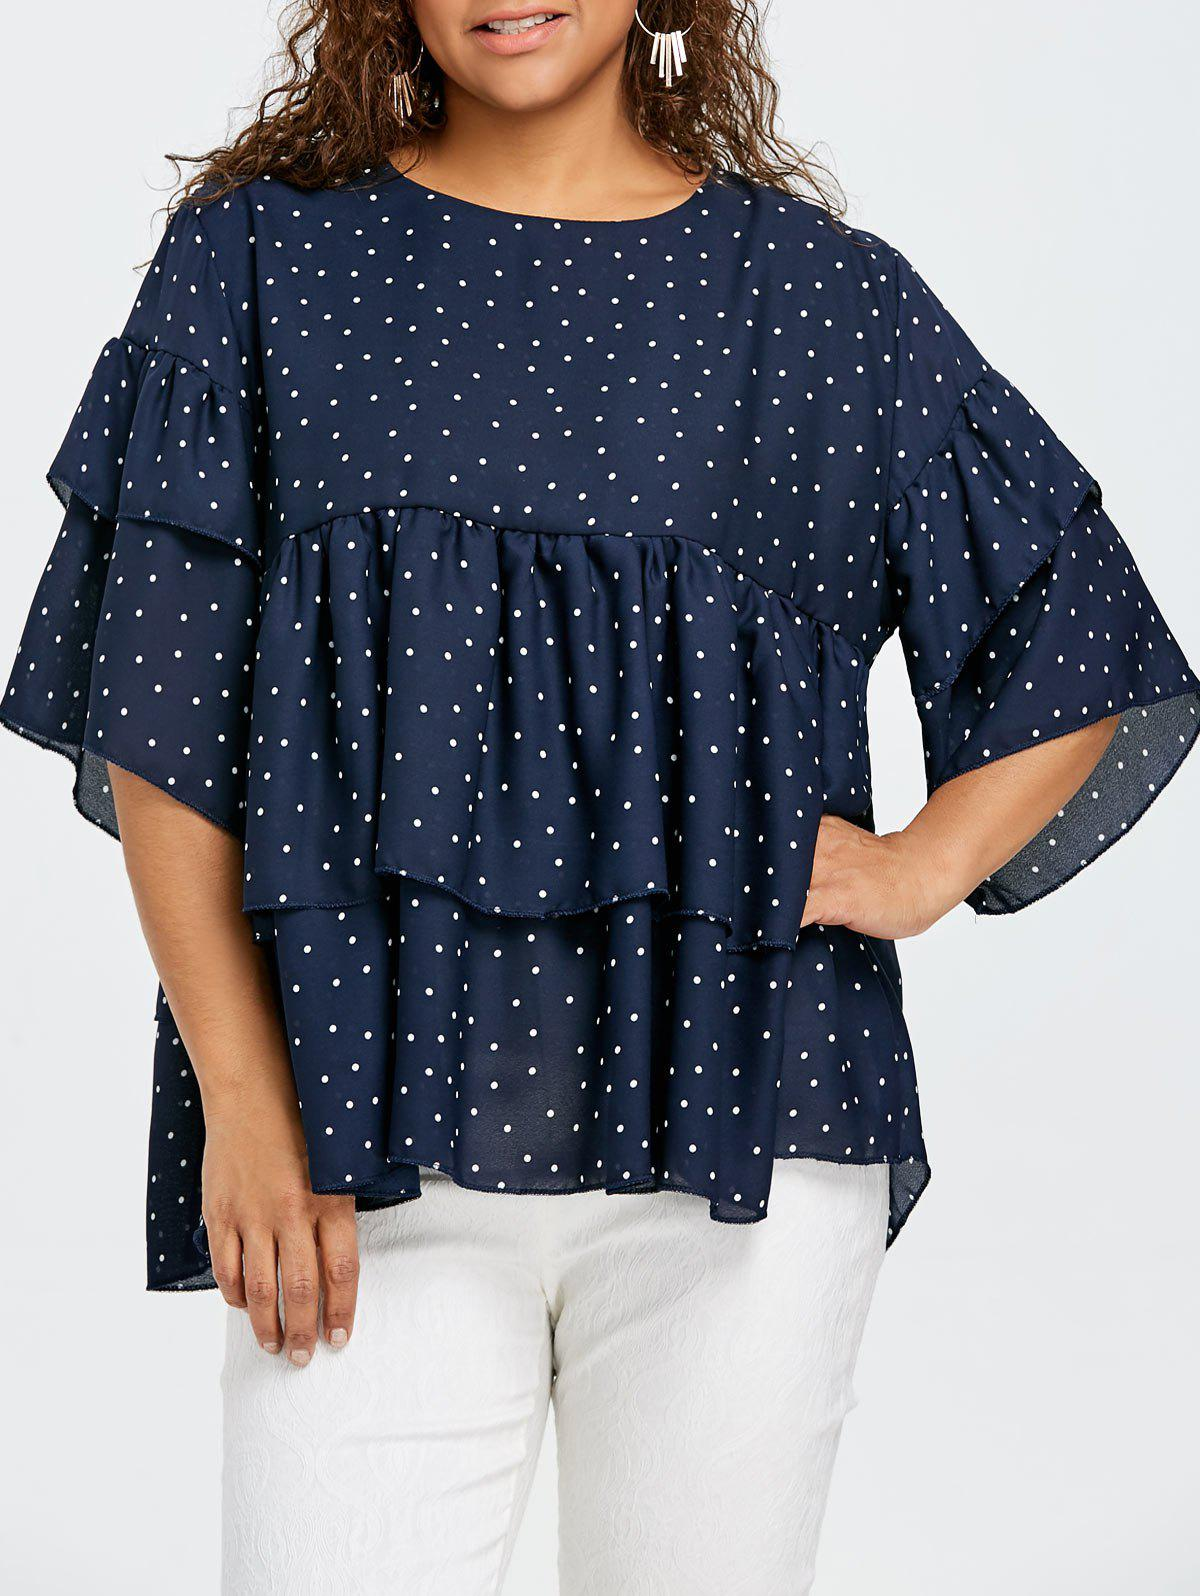 Fashion Plus Size Tiered Flounce Polka Dot Blouse